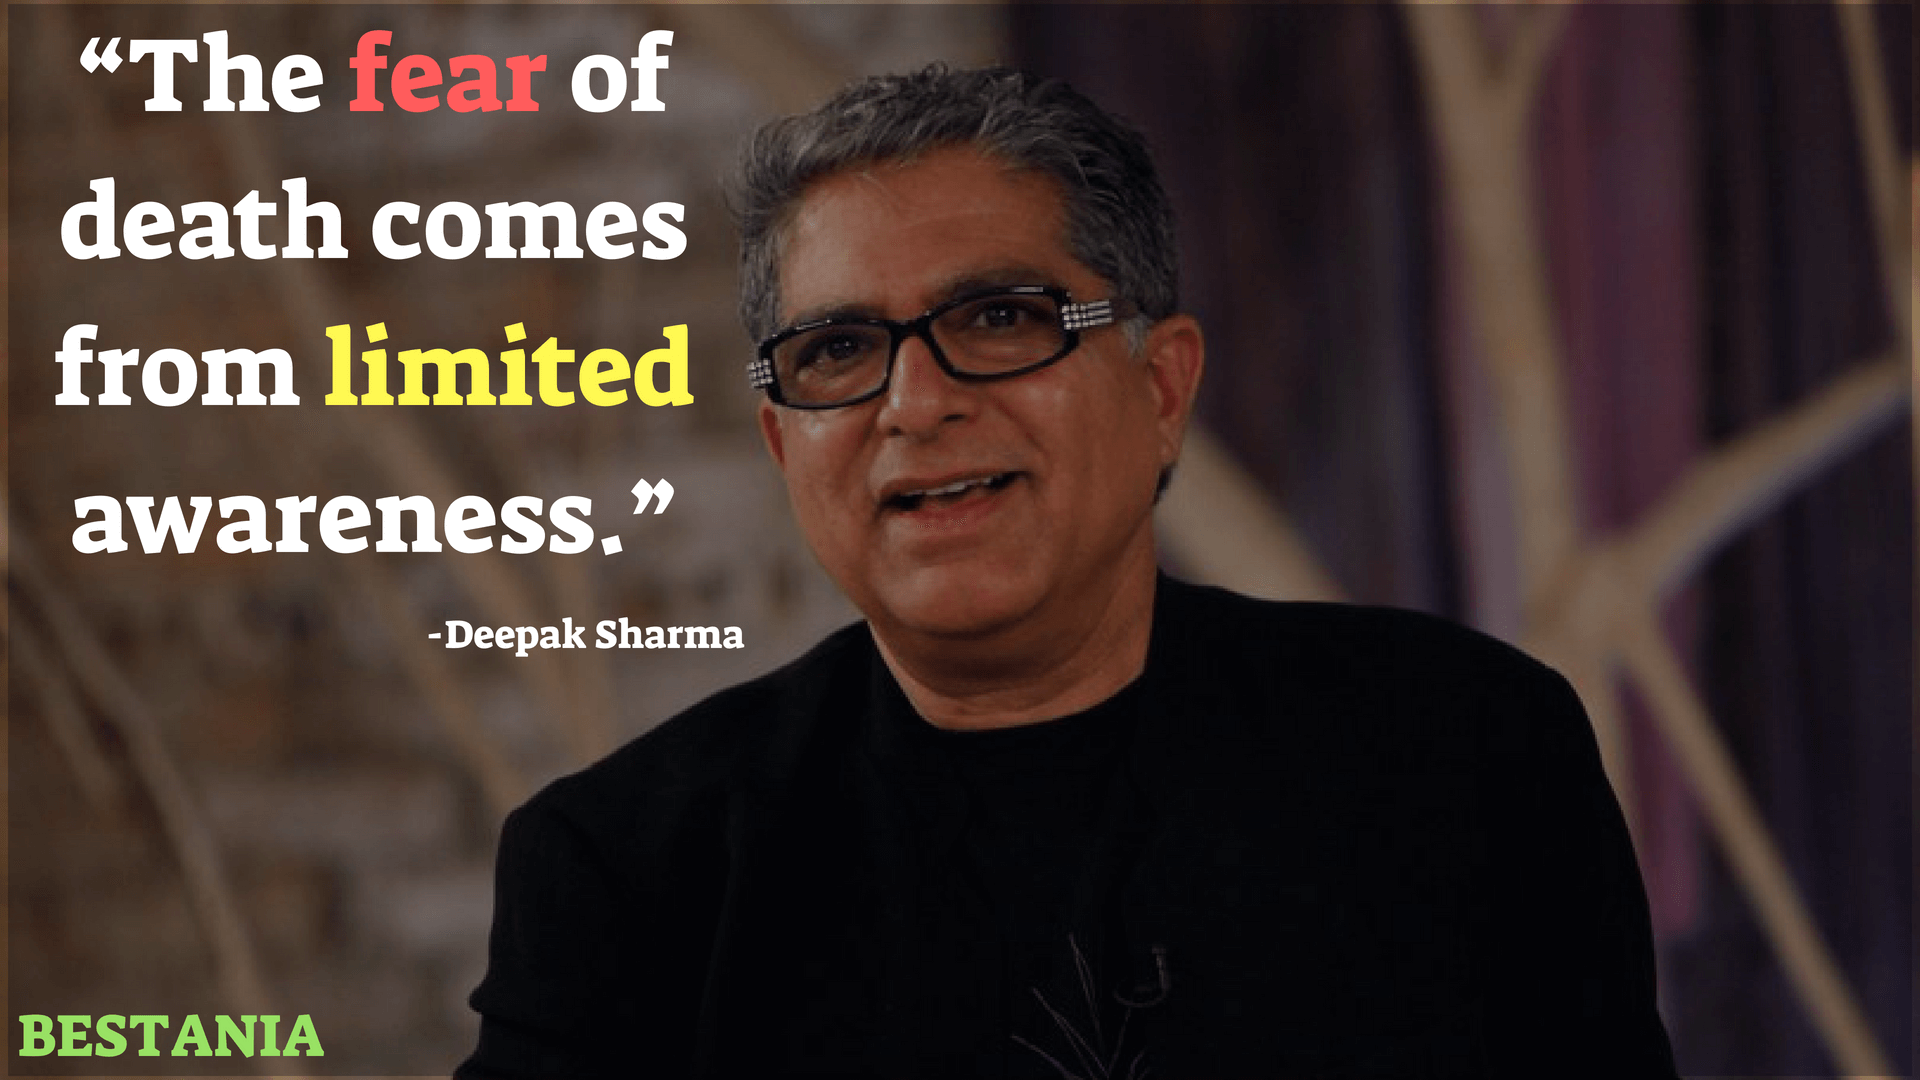 THE FEAR OF DEATH COMES FROM LIMITED AWARENESS – DEEPAK CHOPRA